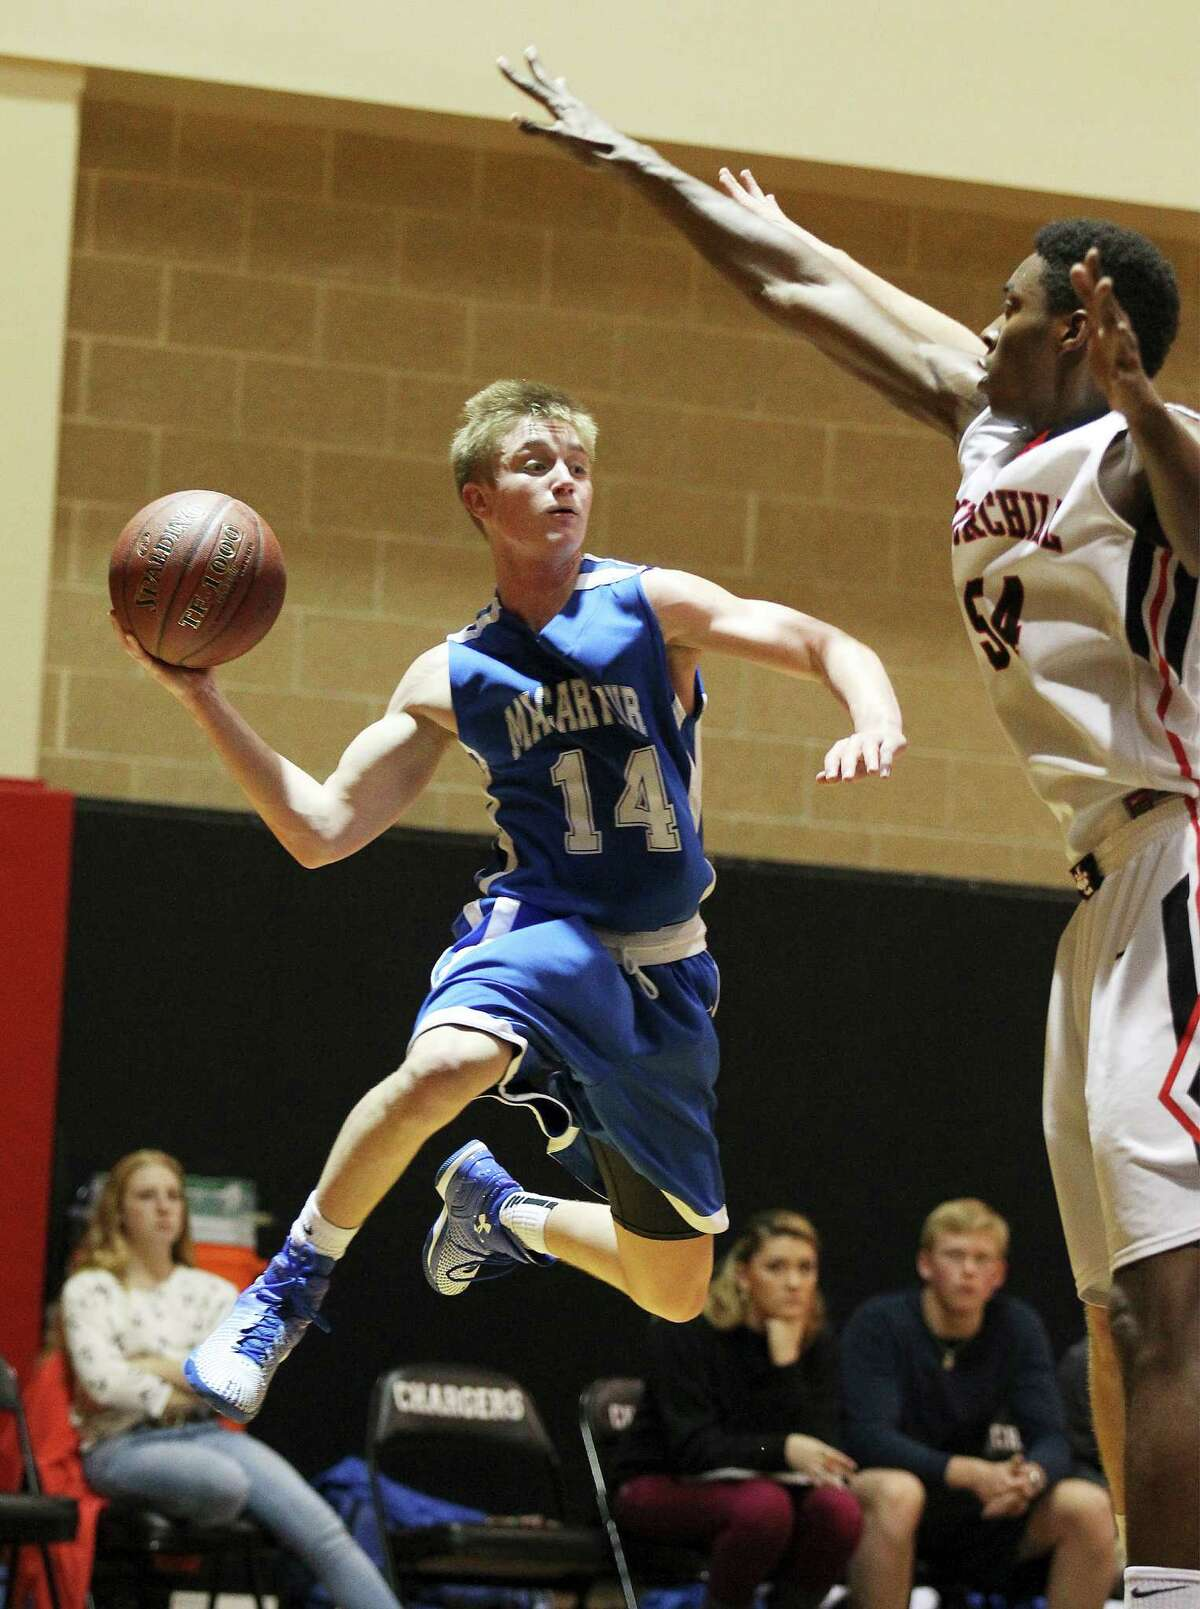 MacArthur's Kyle Murphy (14) attempts a pass against Churchill's Clevon Brown (54) in District 26-6A boys basketball at Churchill on Jan. 30, 2015.